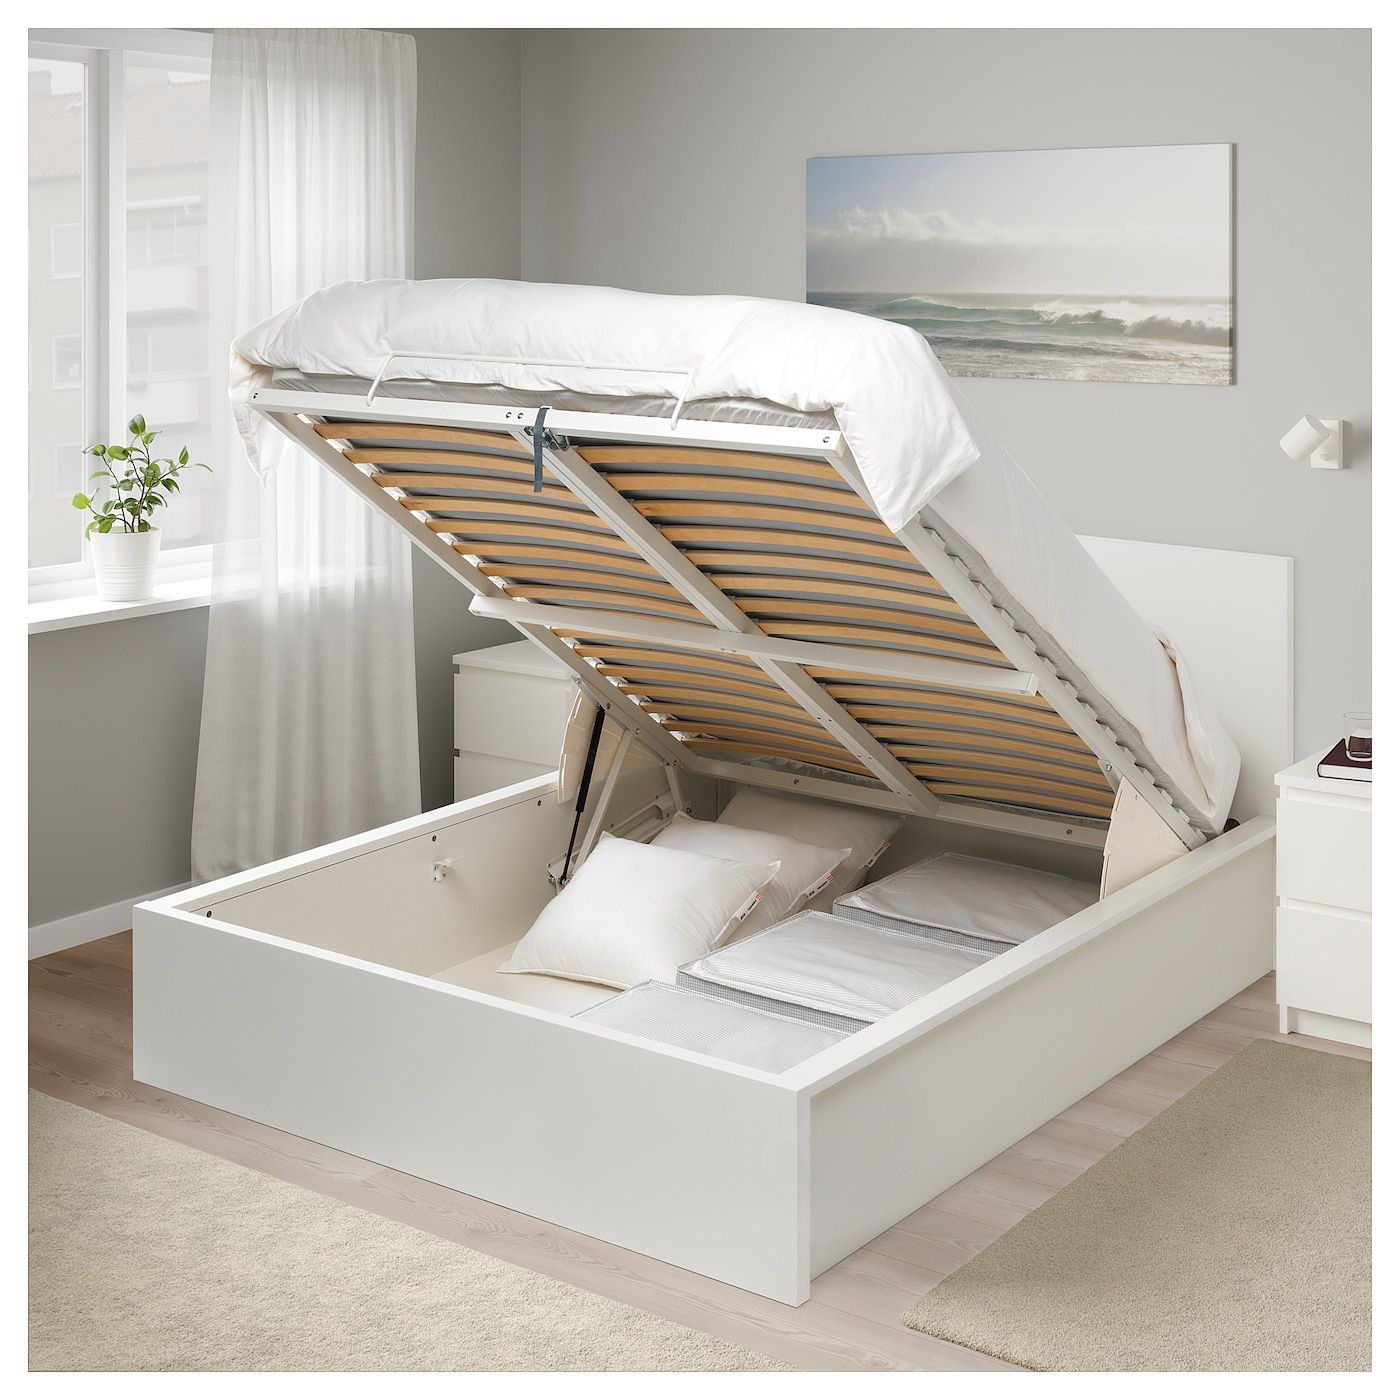 Malm Storage Bed White Queen Malm Bed Frame Malm Bed